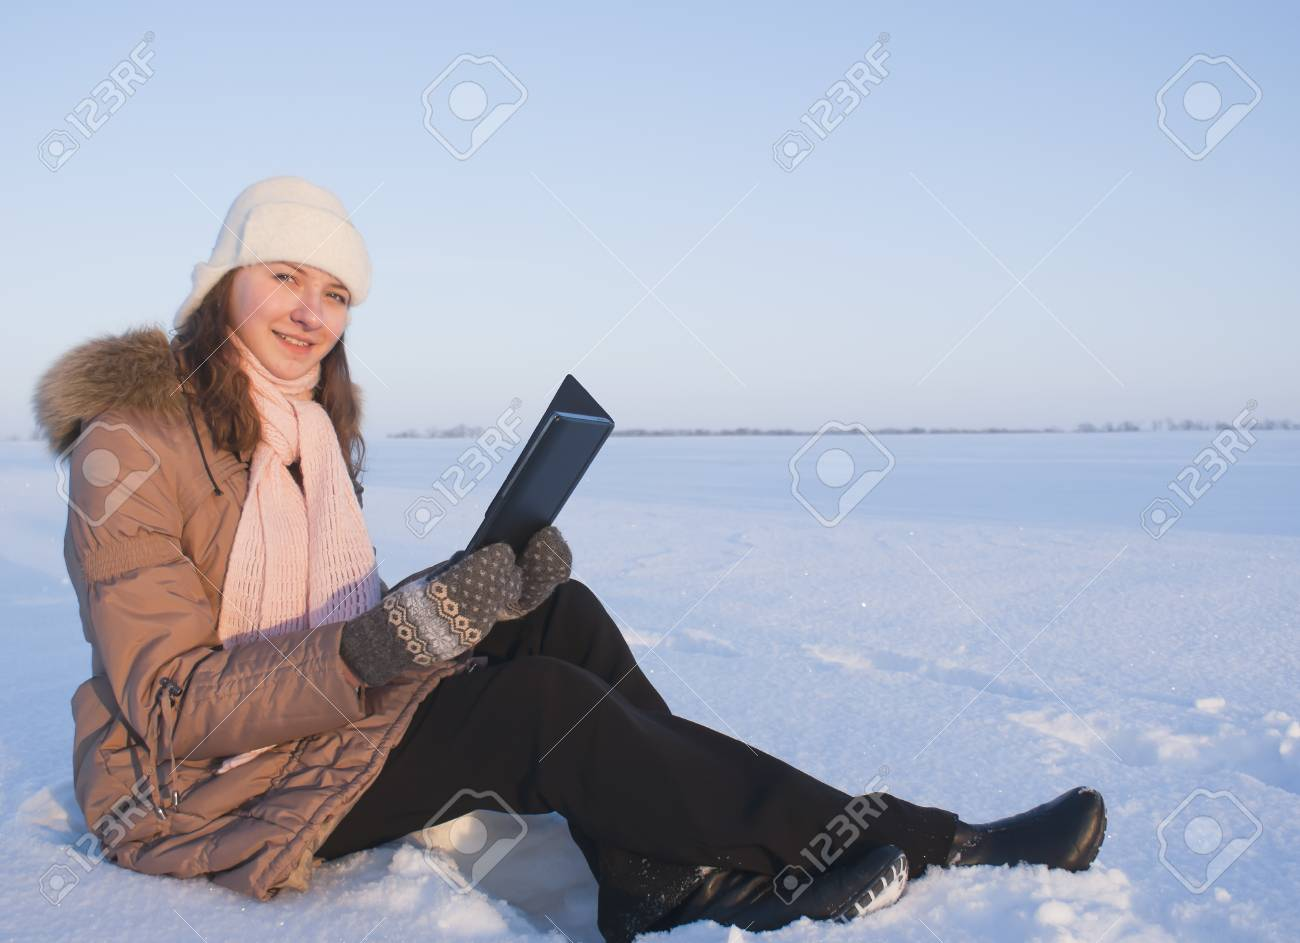 Teen girl reading e-book outdoors at winter time Stock Photo - 8746448